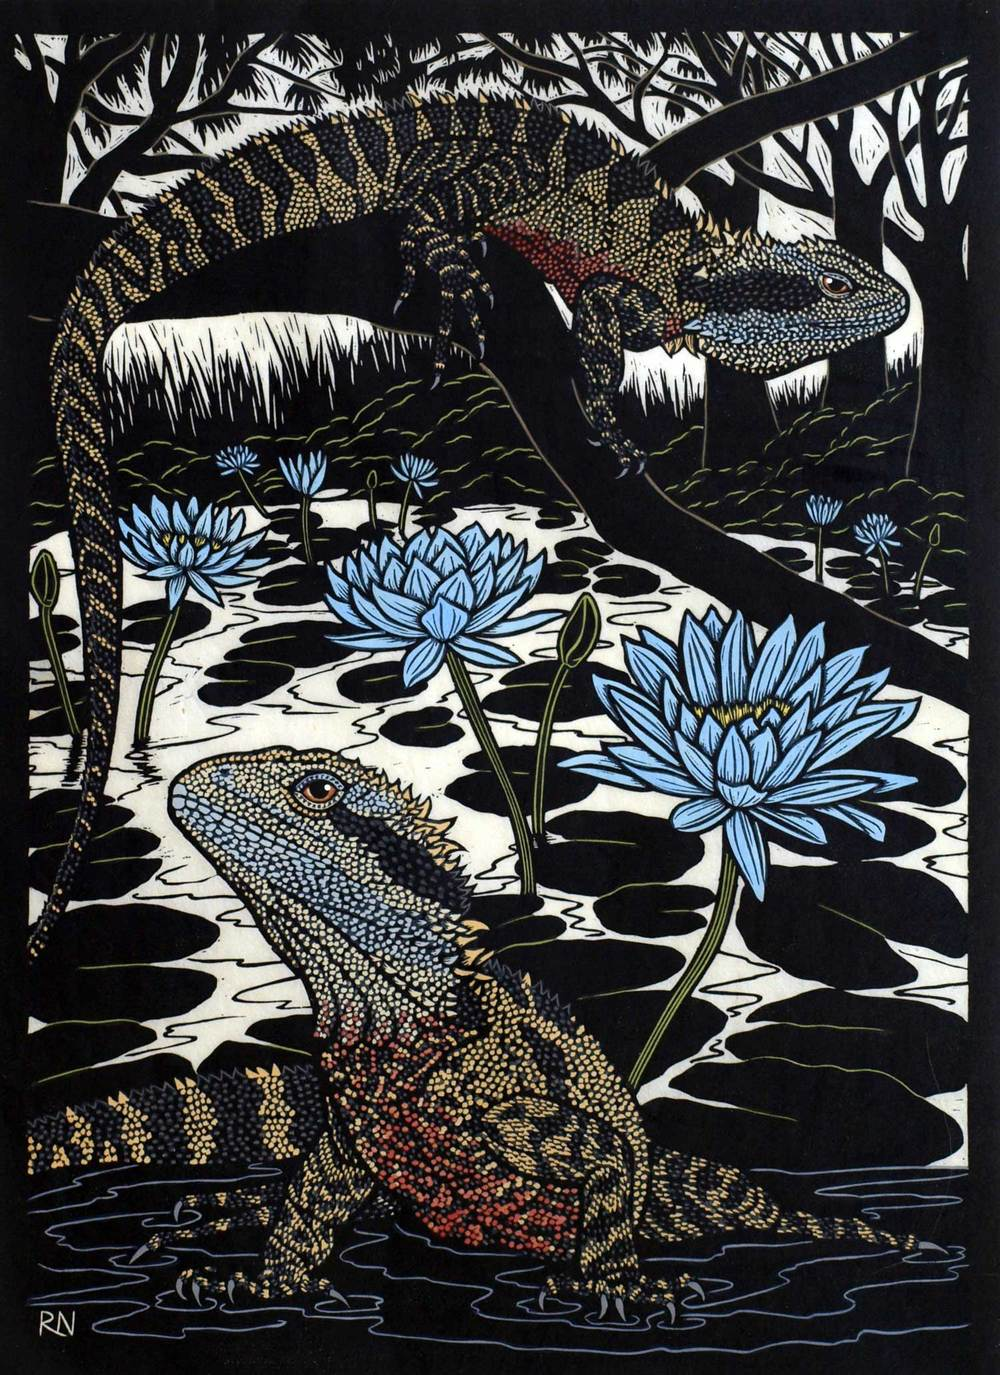 WATER DRAGON  49 X 35.5 CM    EDITION OF 50  HAND COLOURED LINOCUT ON HANDMADE JAPANESE PAPER  $1,050